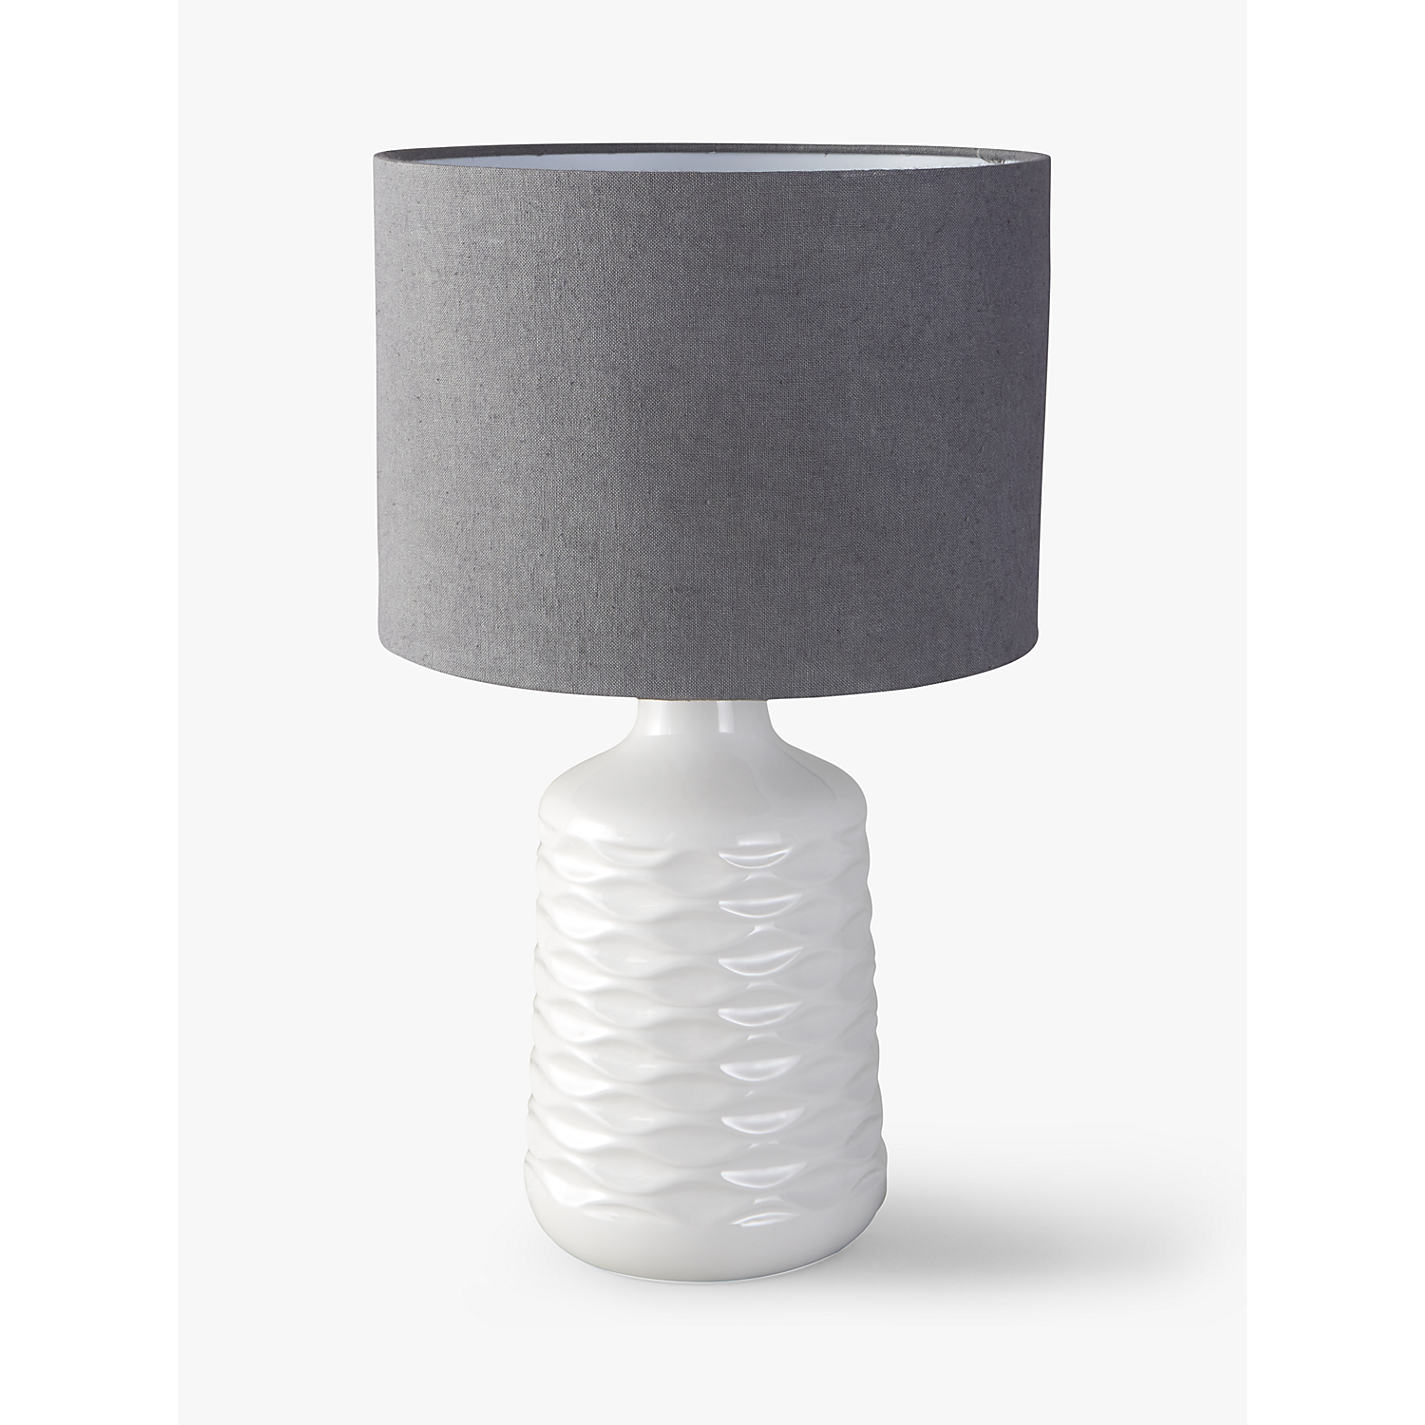 Buy john lewis annie table lamp john lewis buy john lewis annie table lamp online at johnlewis geotapseo Image collections